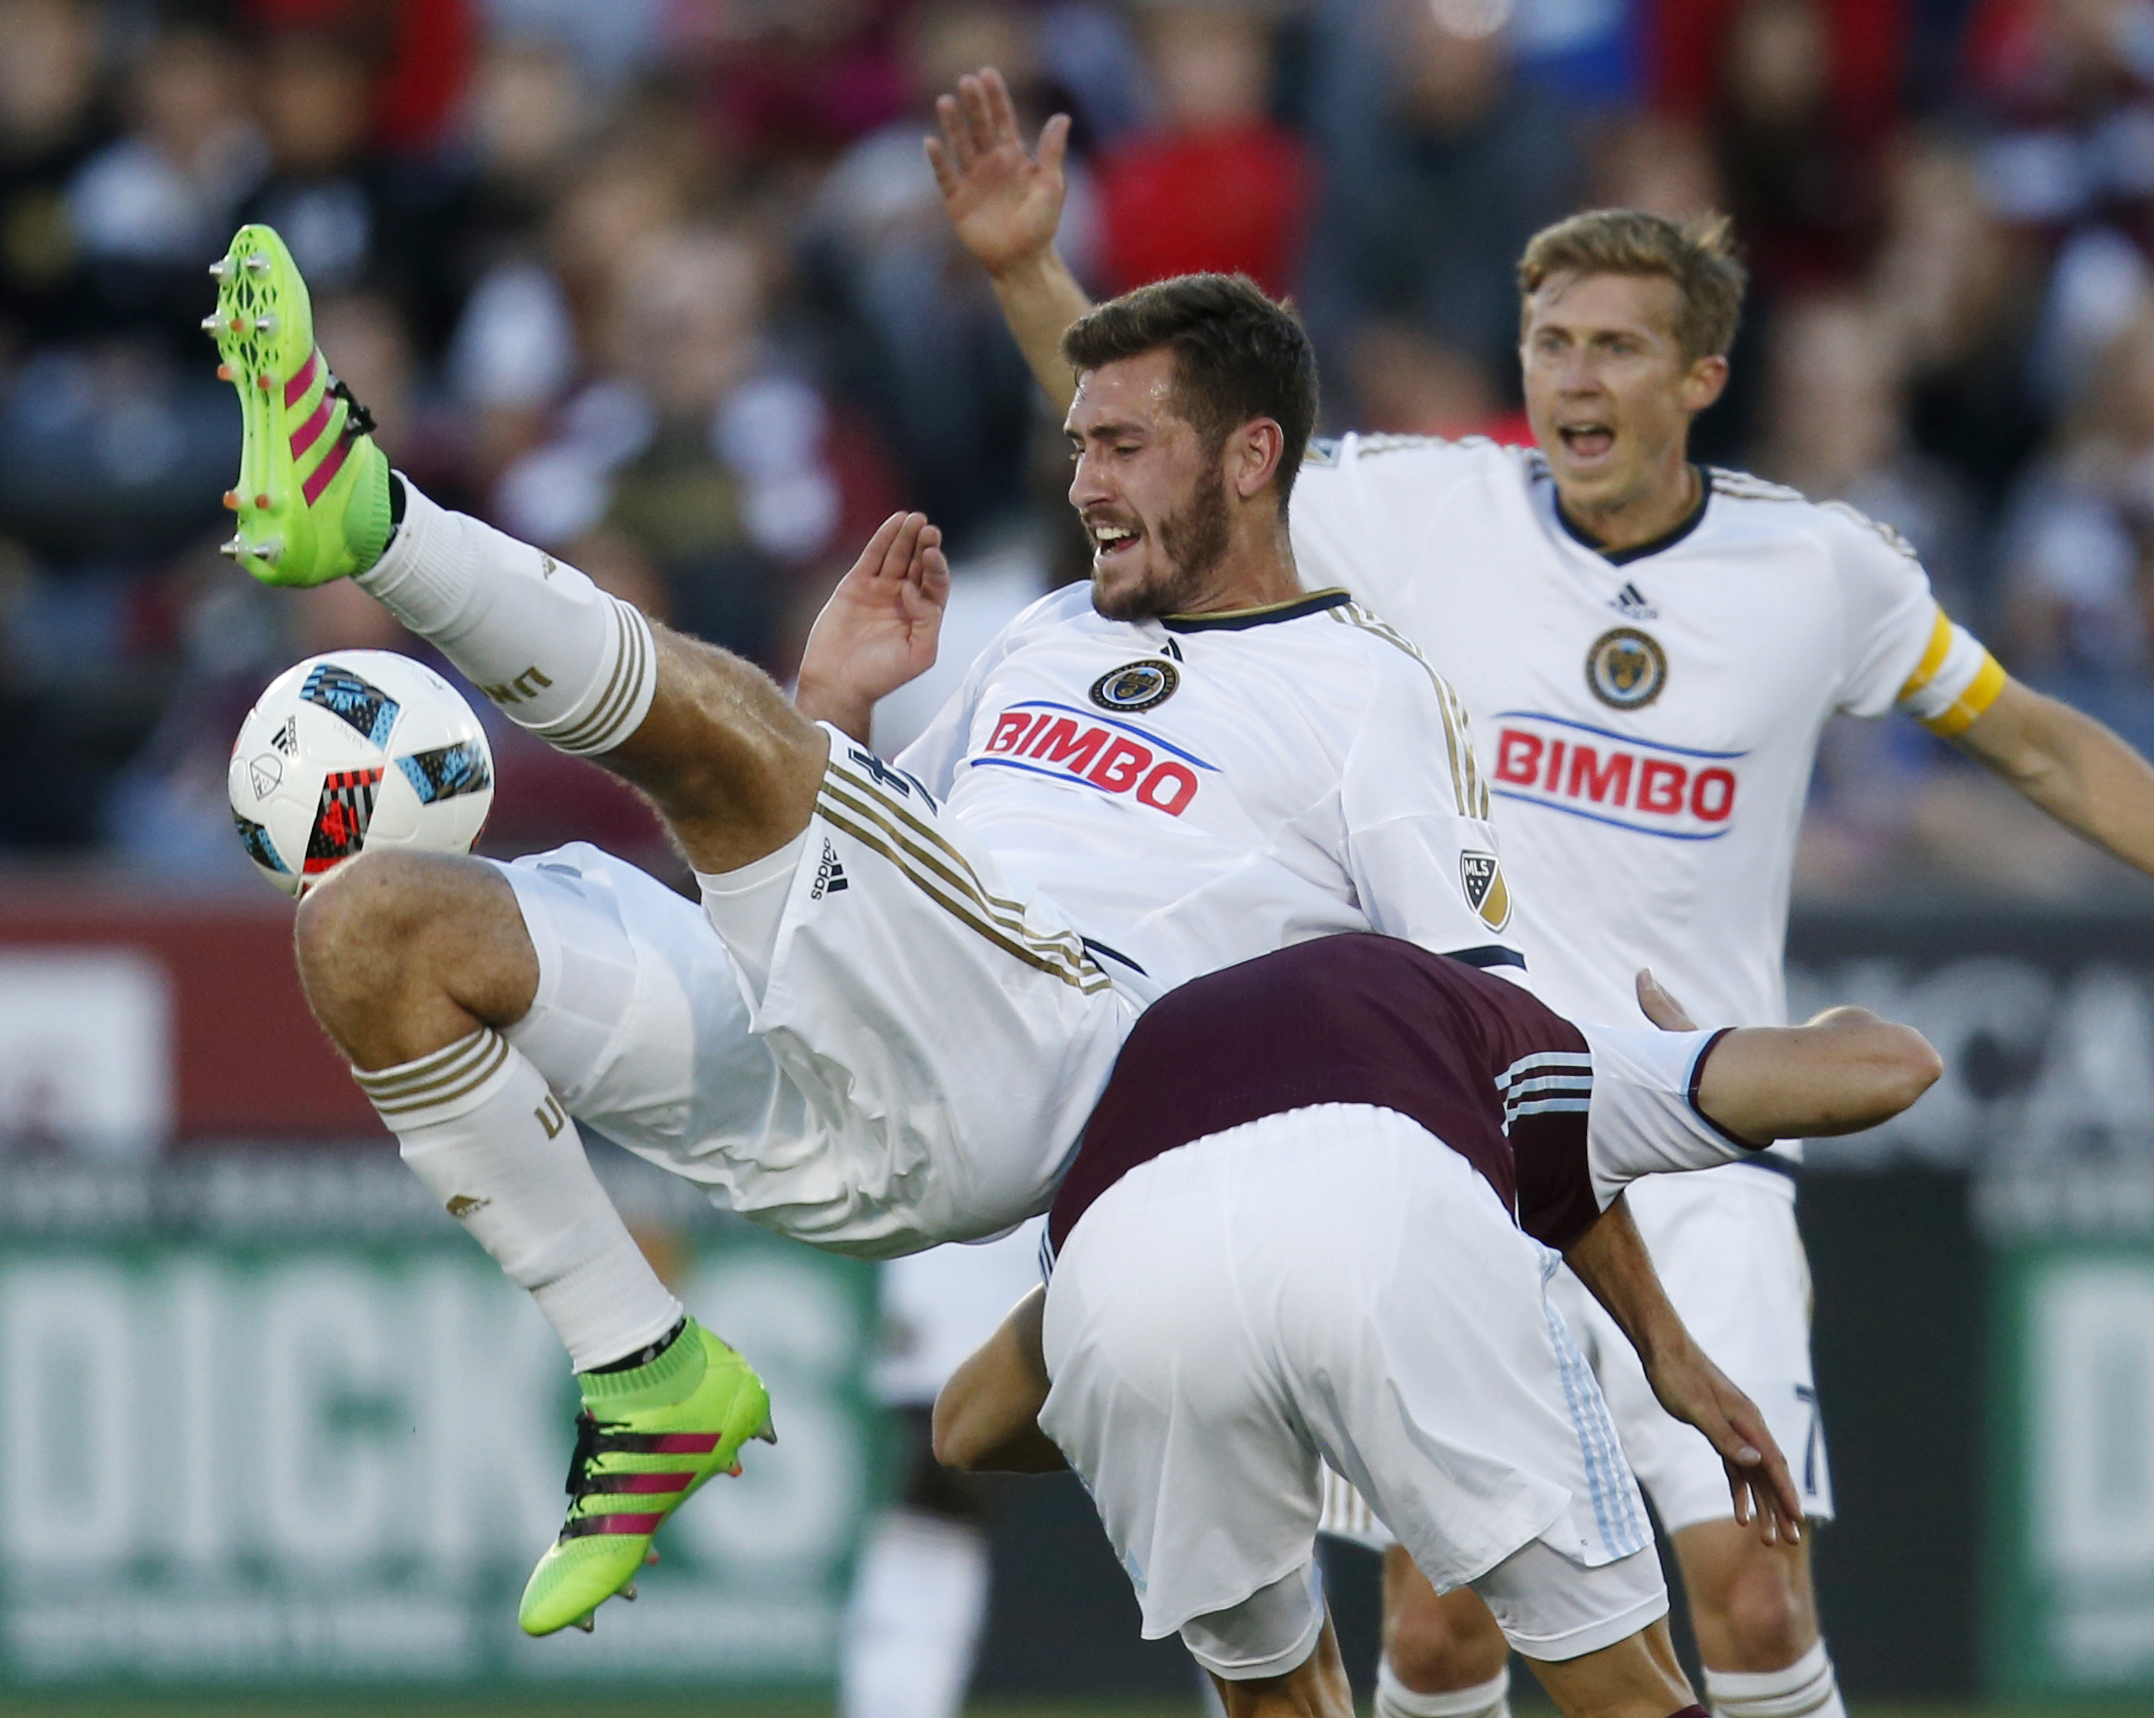 Philadelphia Union defender Ken Tribbett, left, collides with Colorado Rapids forward Luis Solignac, right, while trying to head the ball as Union midfielder Brian Carroll looks in this May 2016,file photo